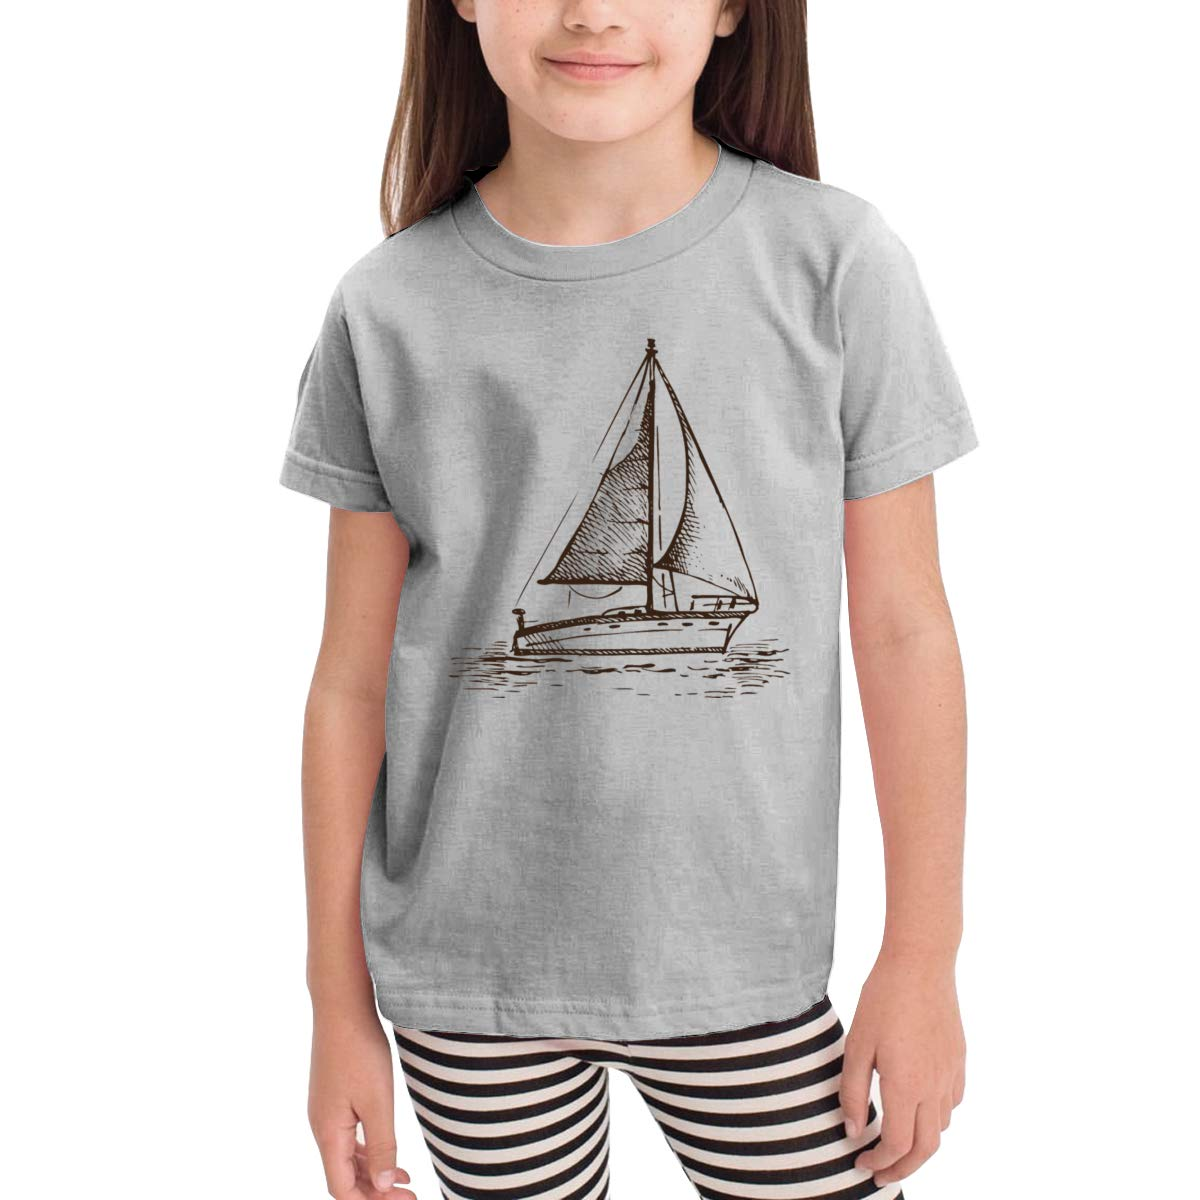 Kids T-Shirt Tops Gray Sailboat in The Sea Unisex Youths Short Sleeve T-Shirt